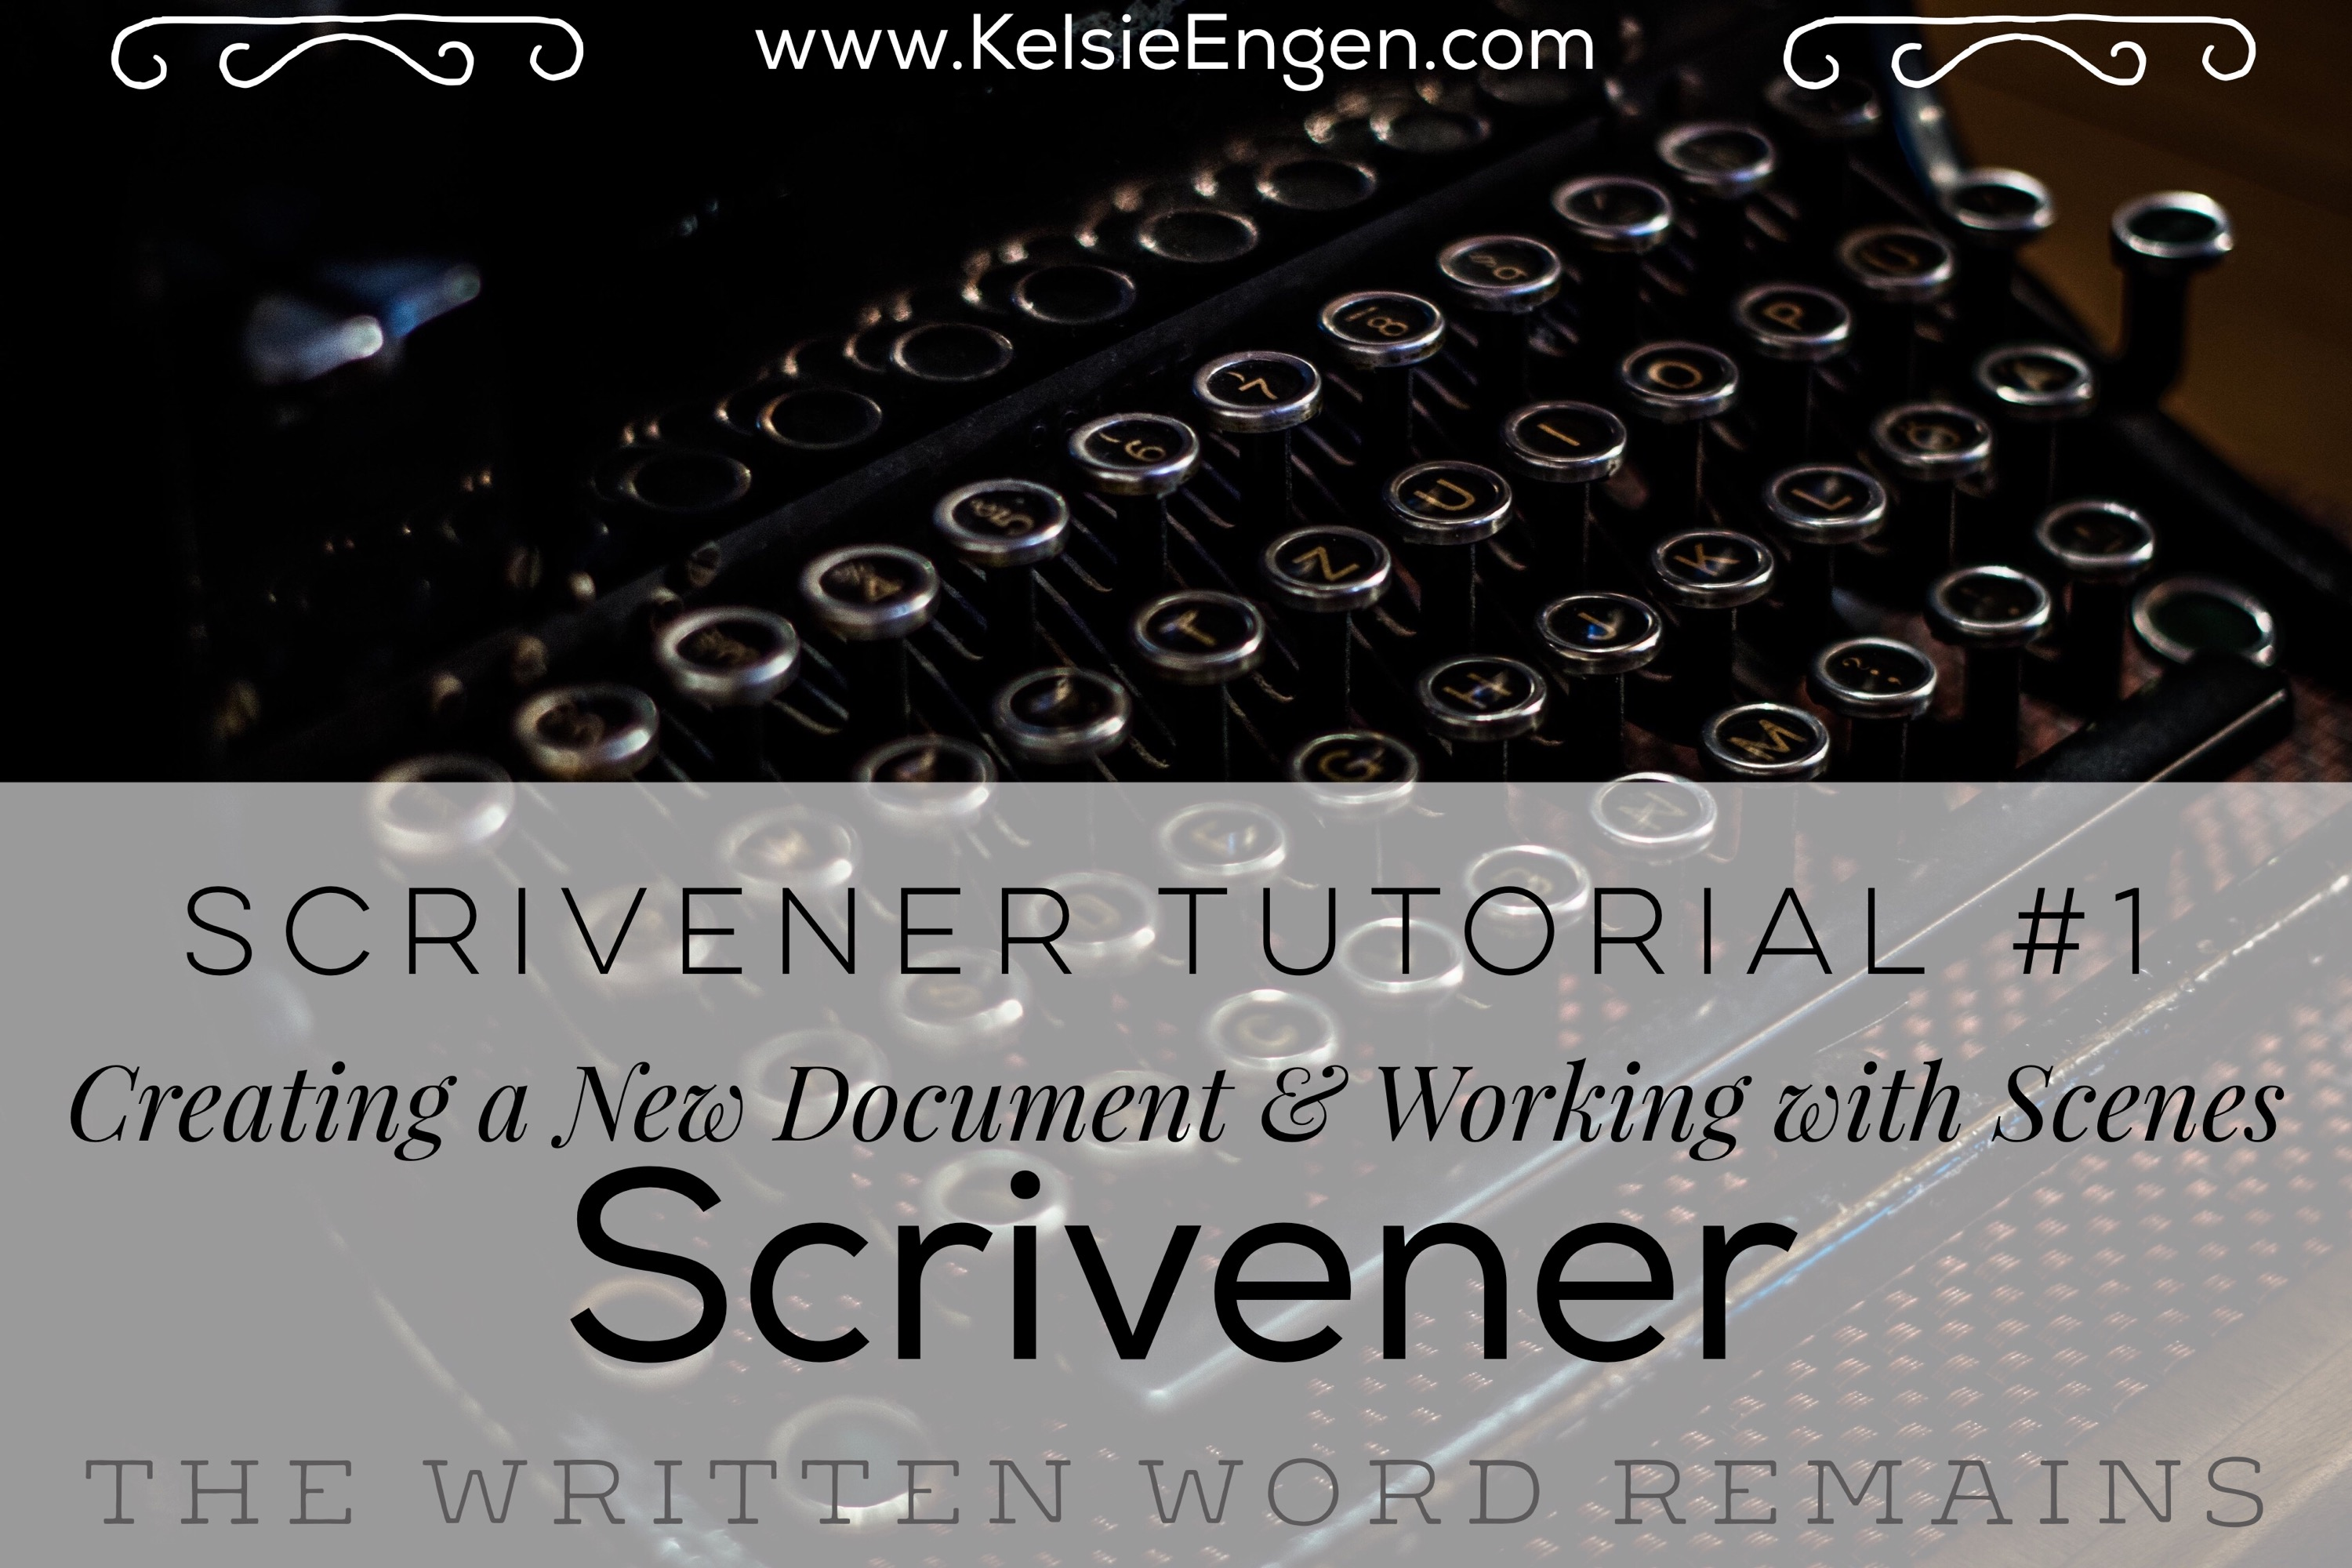 Scrivener Tutorial #1: Creating a New Document & Working with Scenes